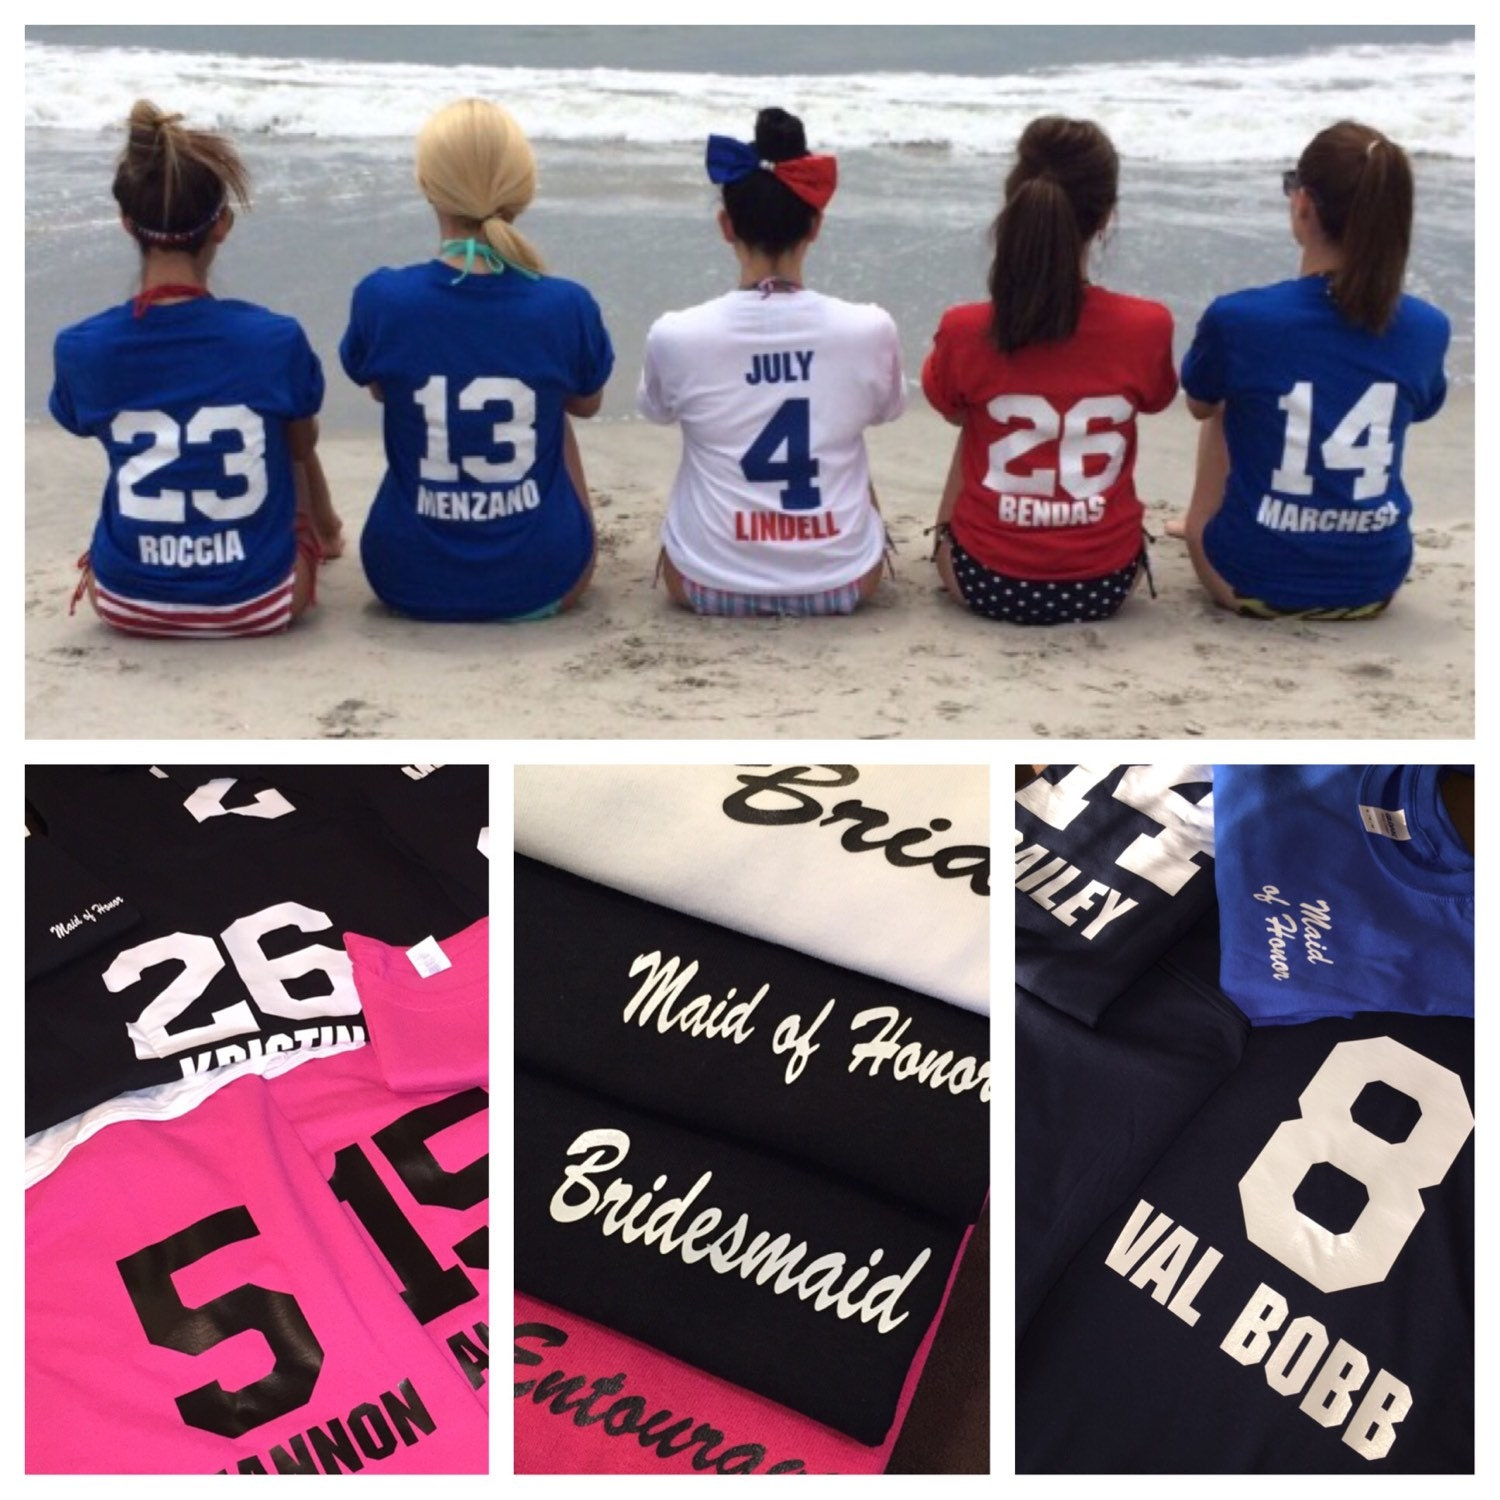 Wedding Bridesmaids Shirts bridesmaids shirts years known the bride sports style